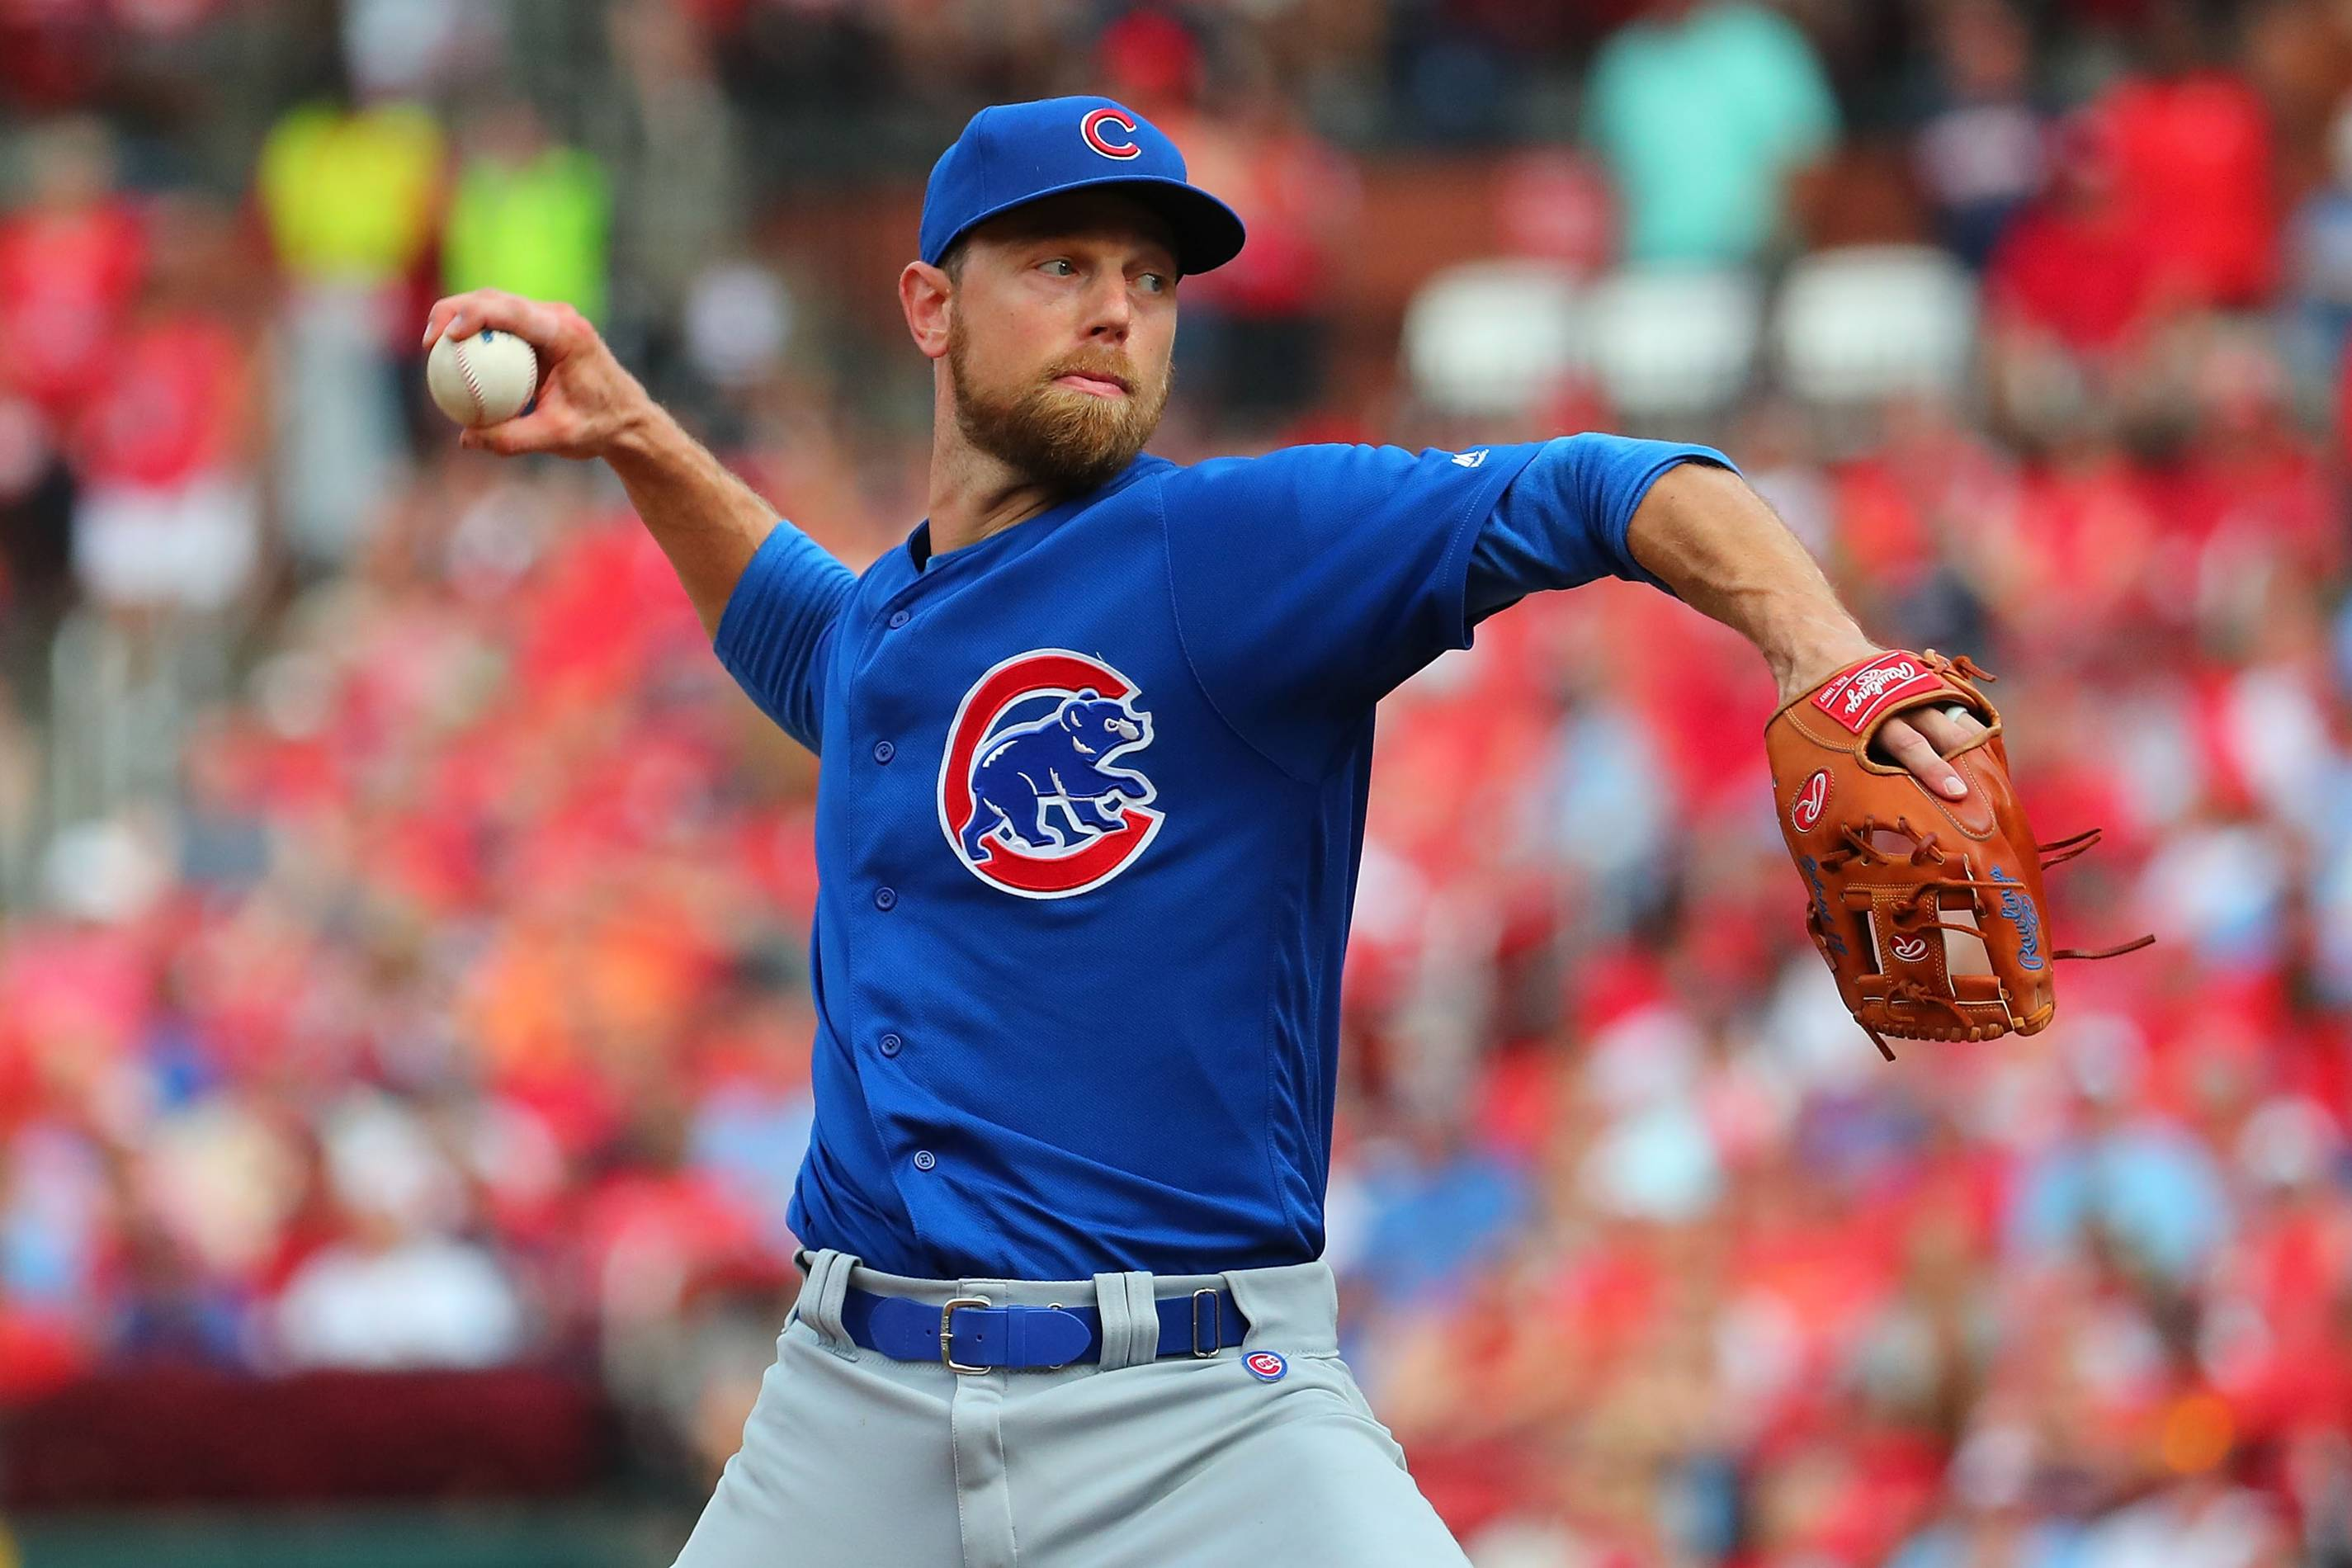 Chicago Cubs MVP Ben Zobrist throws a pitch in 2019